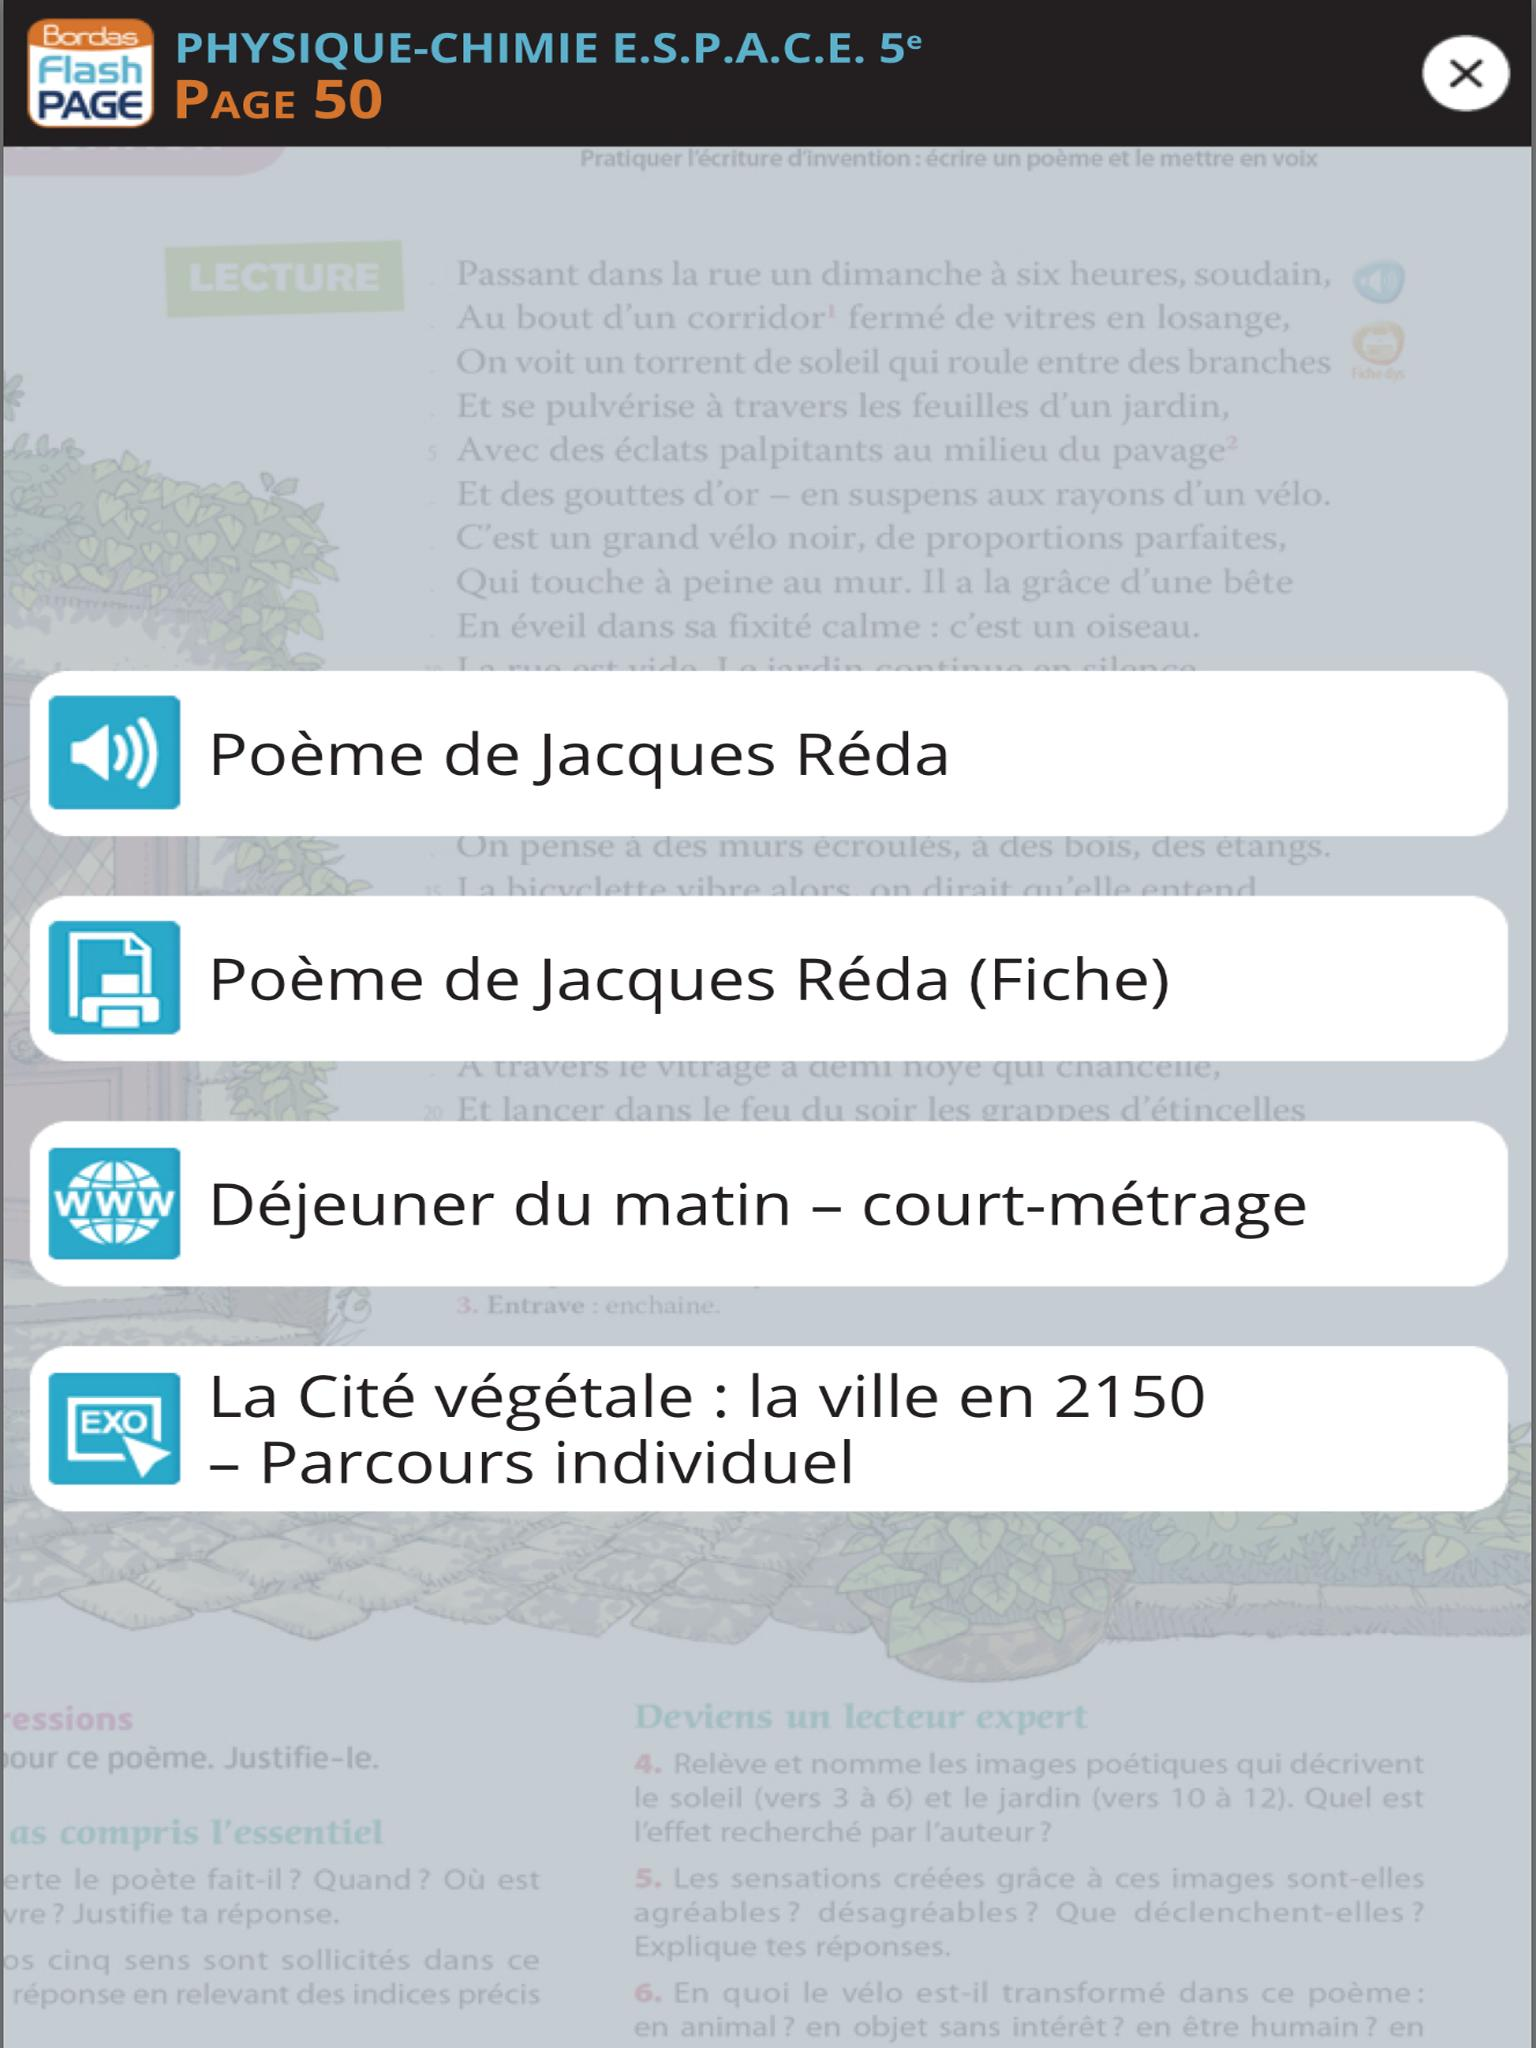 Bordas Flashpage For Android Apk Download